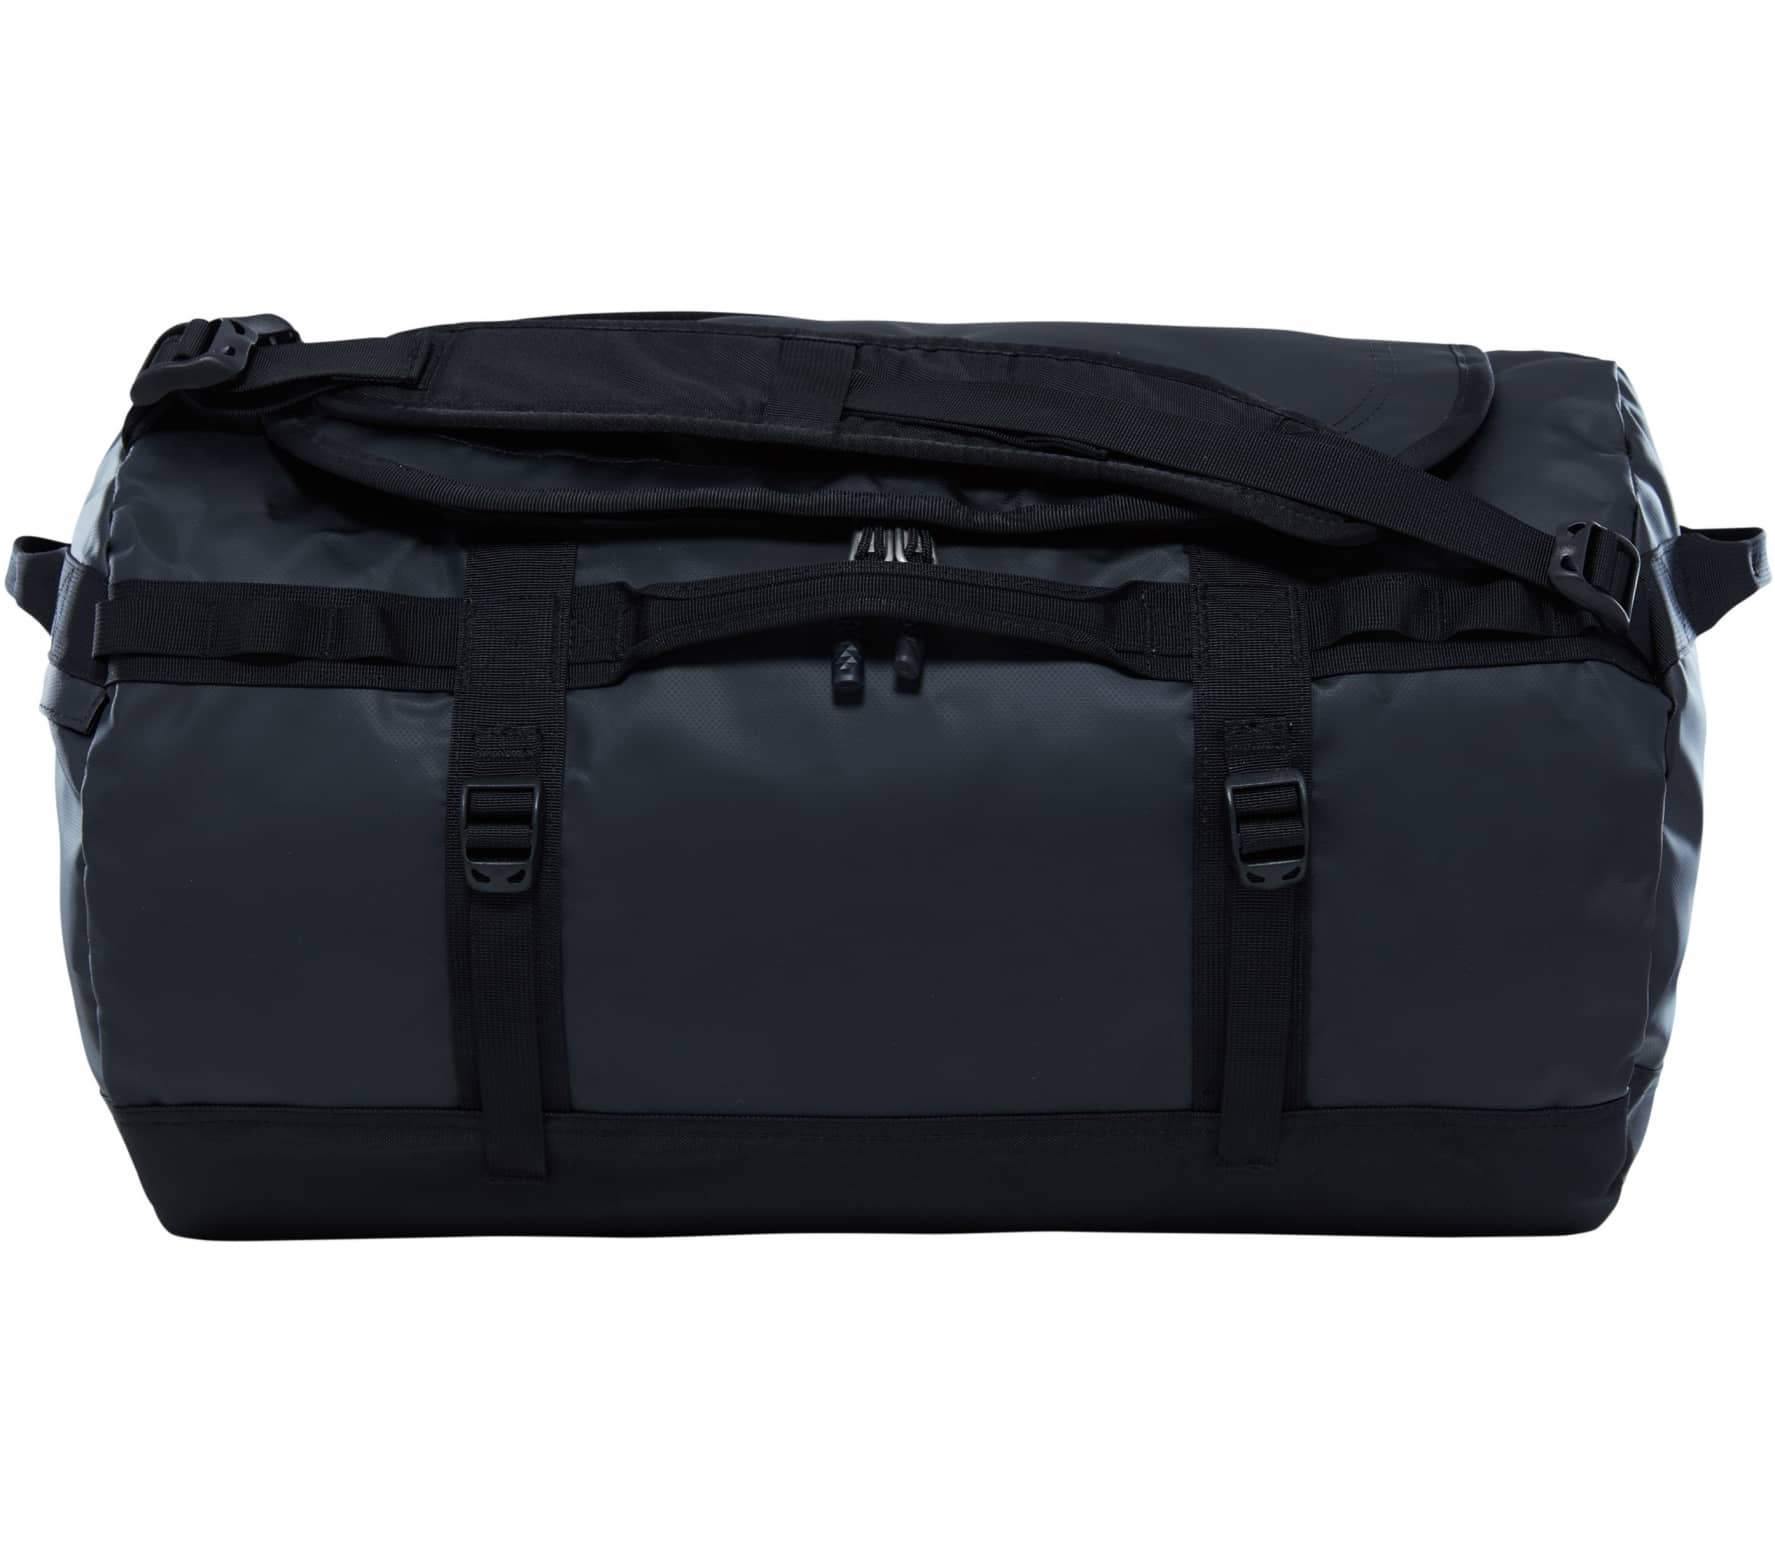 The North Face - Base Camp S - Update duffel bag (black) thumbnail